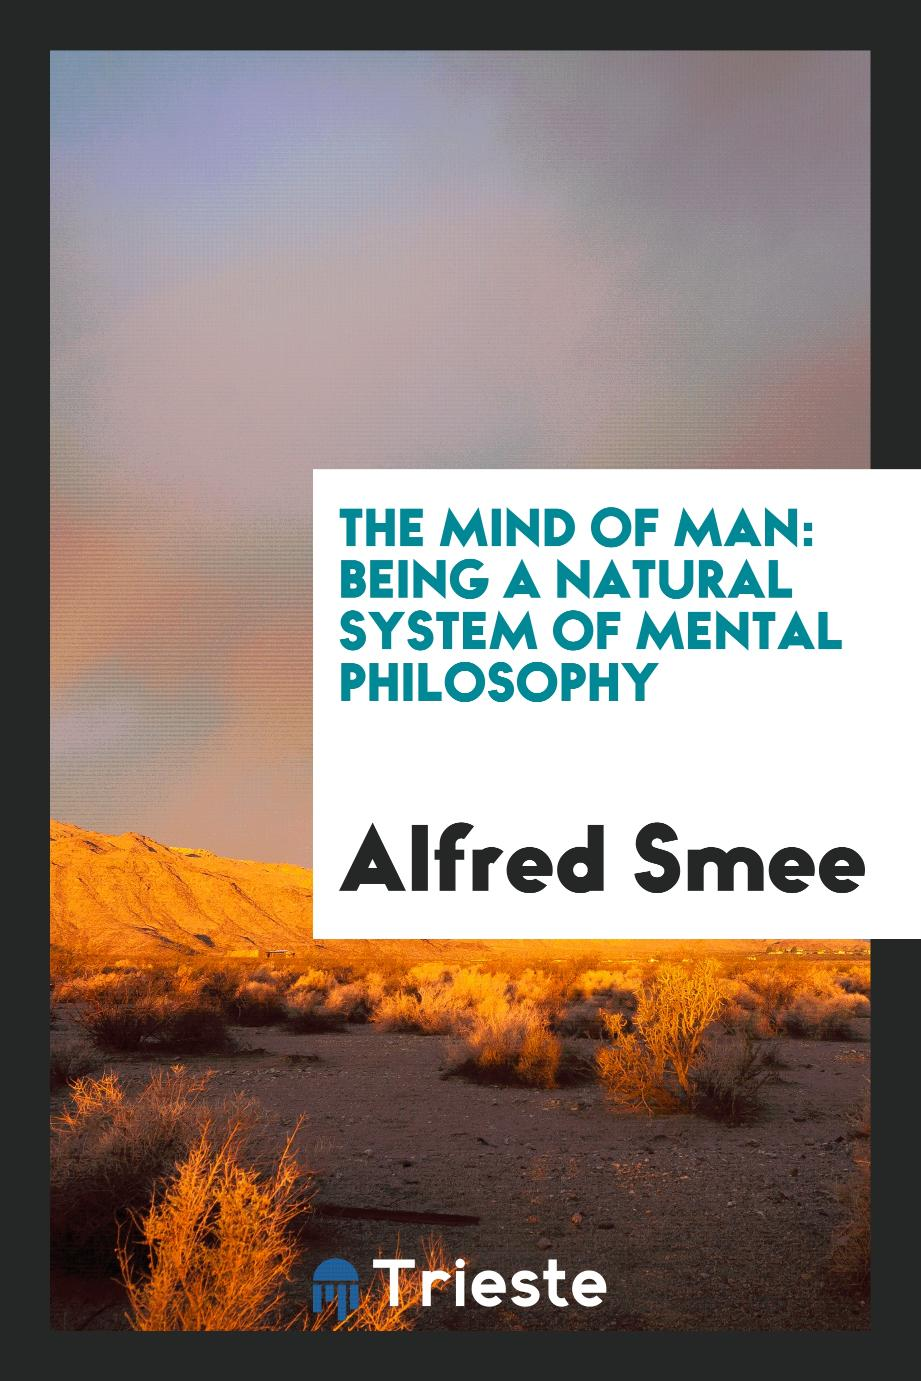 The Mind of Man: Being a Natural System of Mental Philosophy